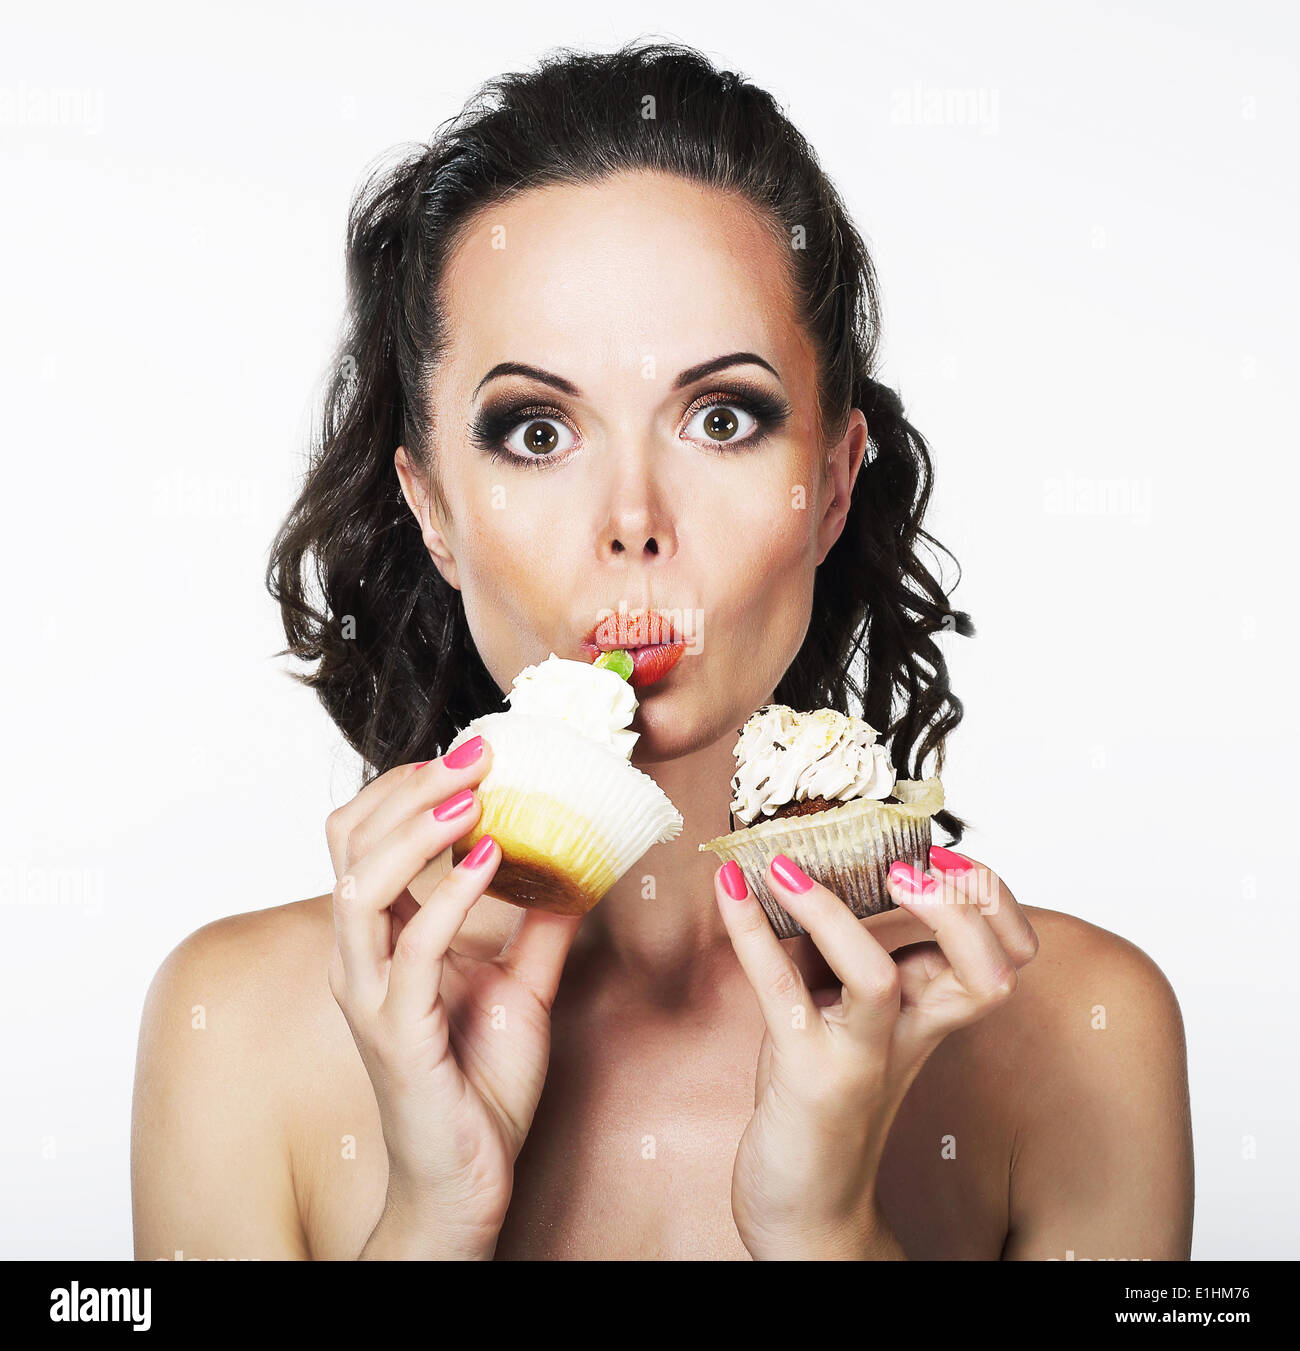 Gluttony. Hungry Funny Young Woman Greedily Eat Cakes with Cream - Stock Image